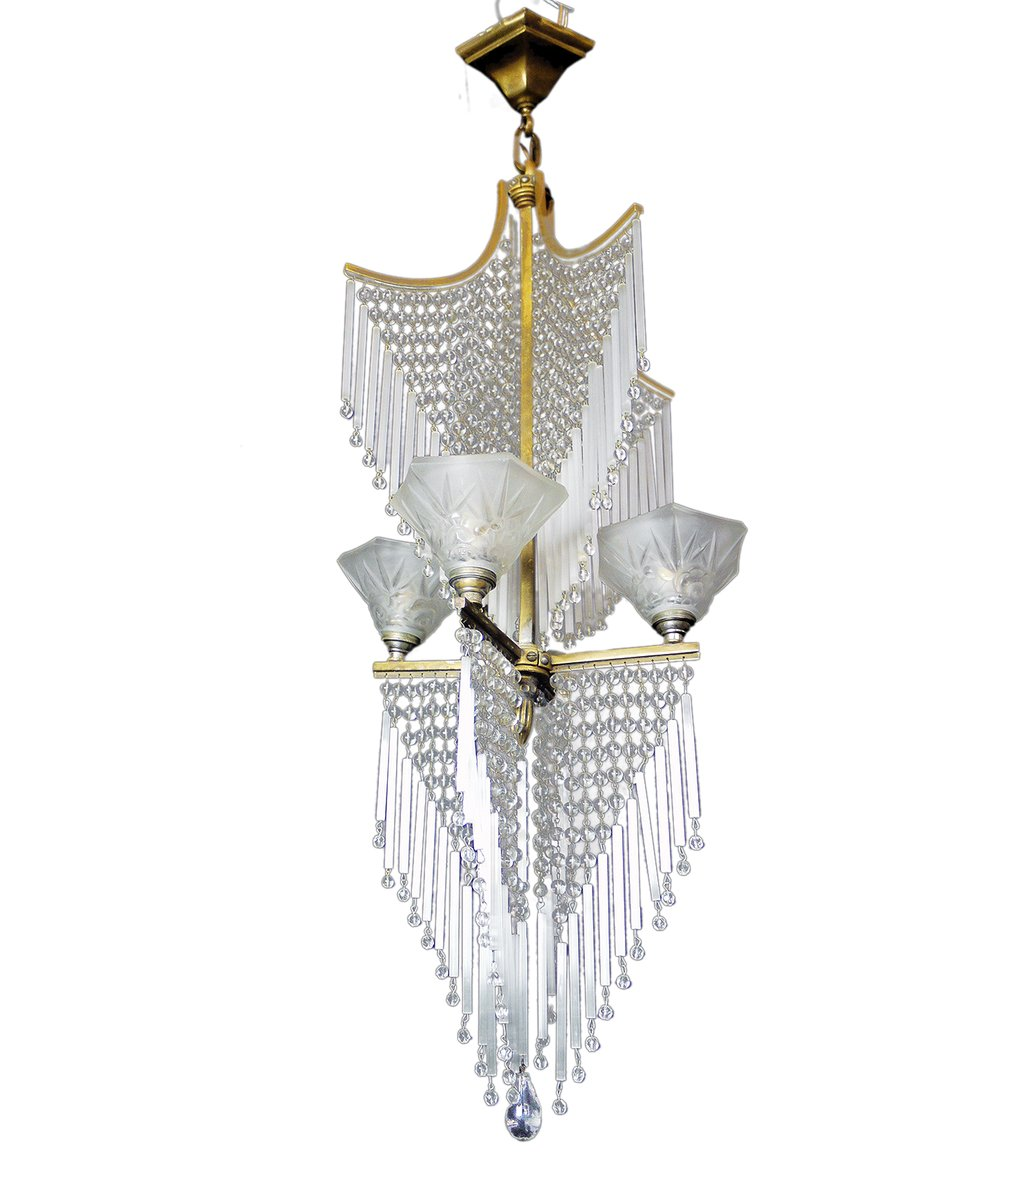 French art deco chandelier chandelier designs french art deco chandelier designs arubaitofo Choice Image